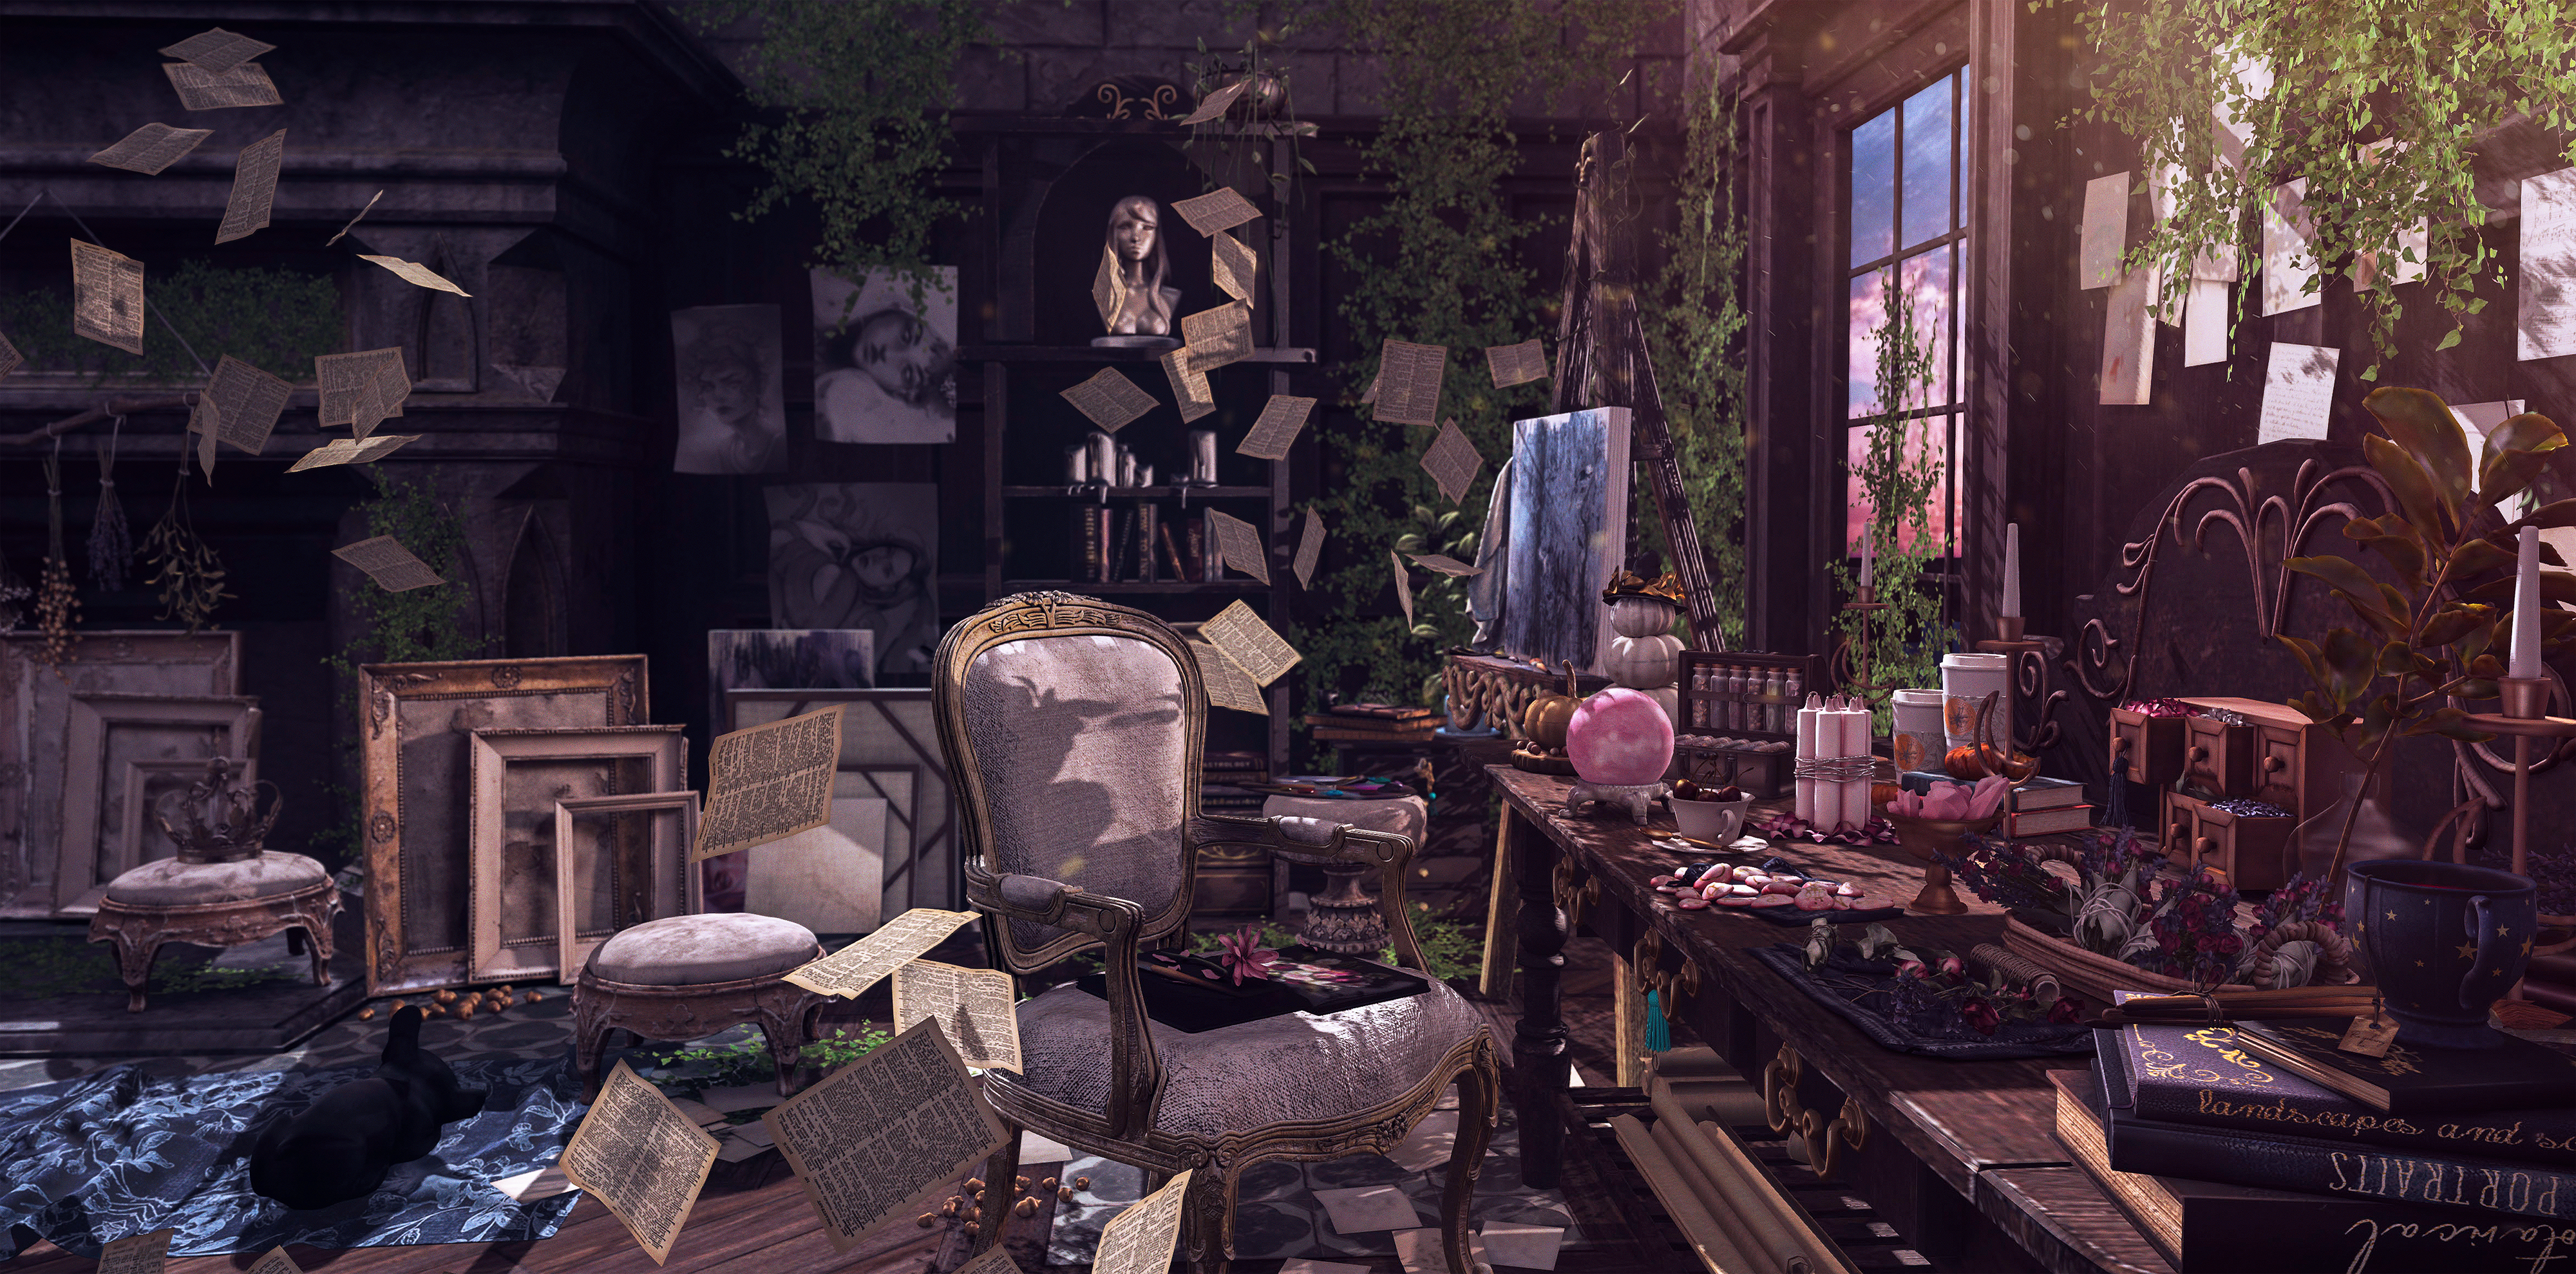 Cluttered Spaces.